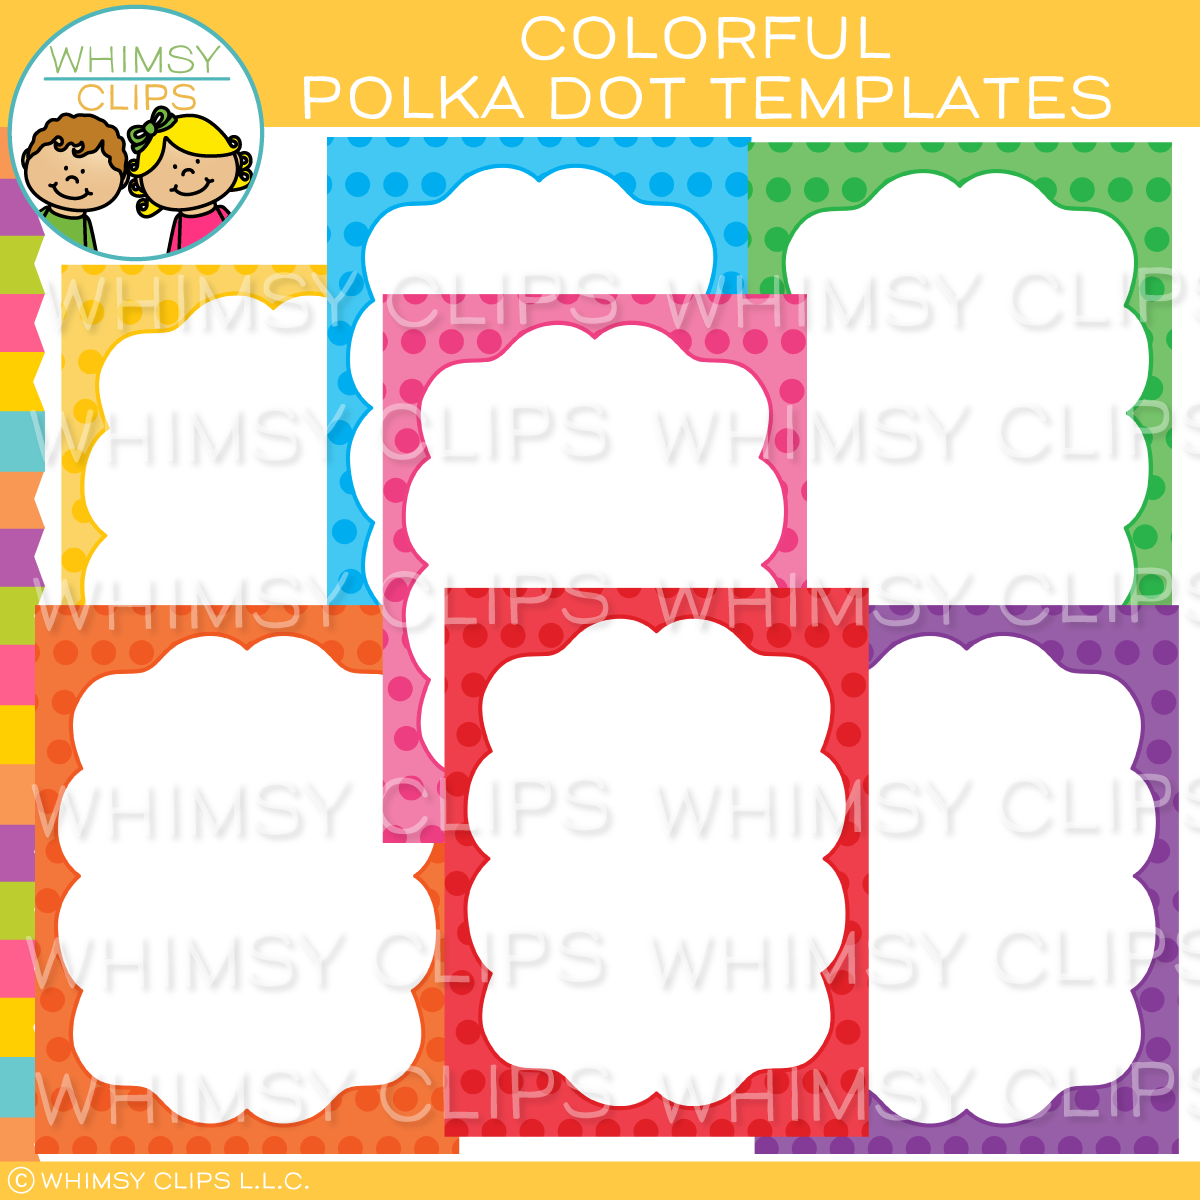 Colorful Polka Dot Templates